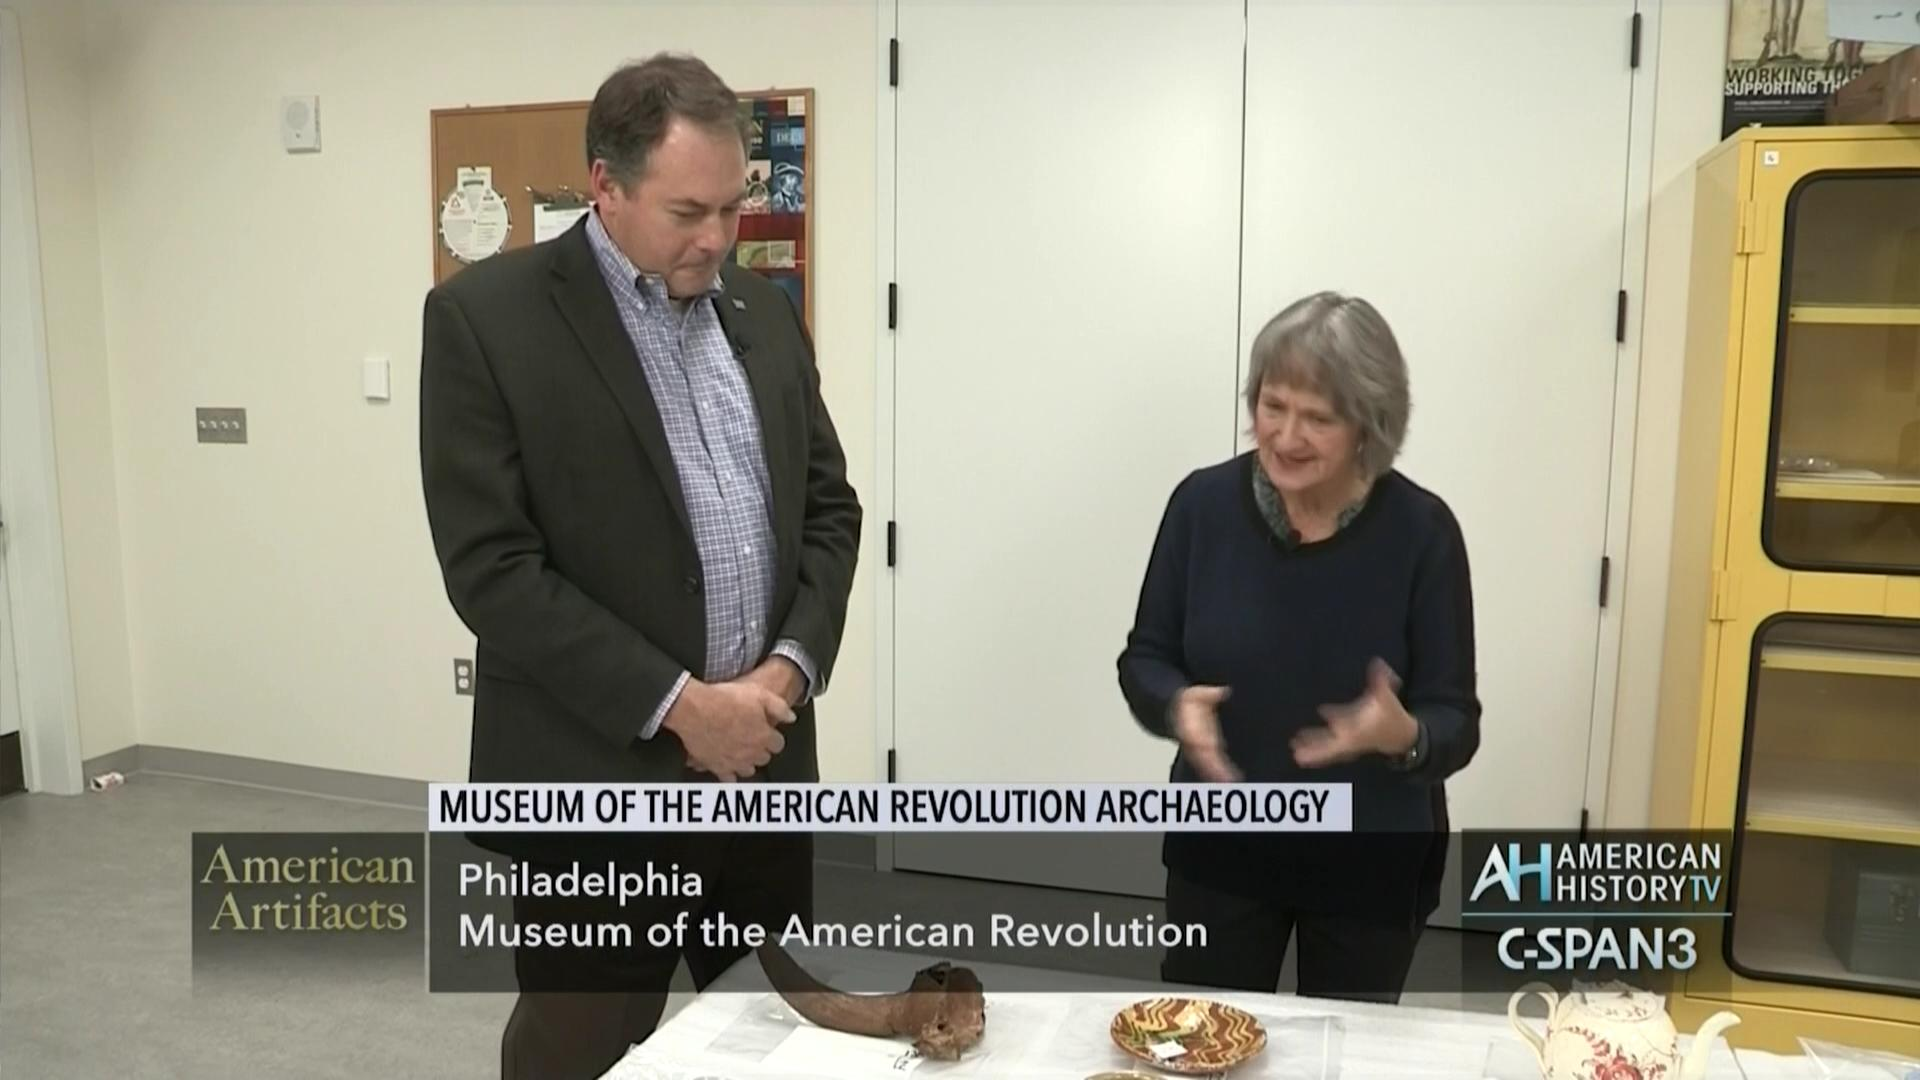 Museum of the American Revolution Archaeology